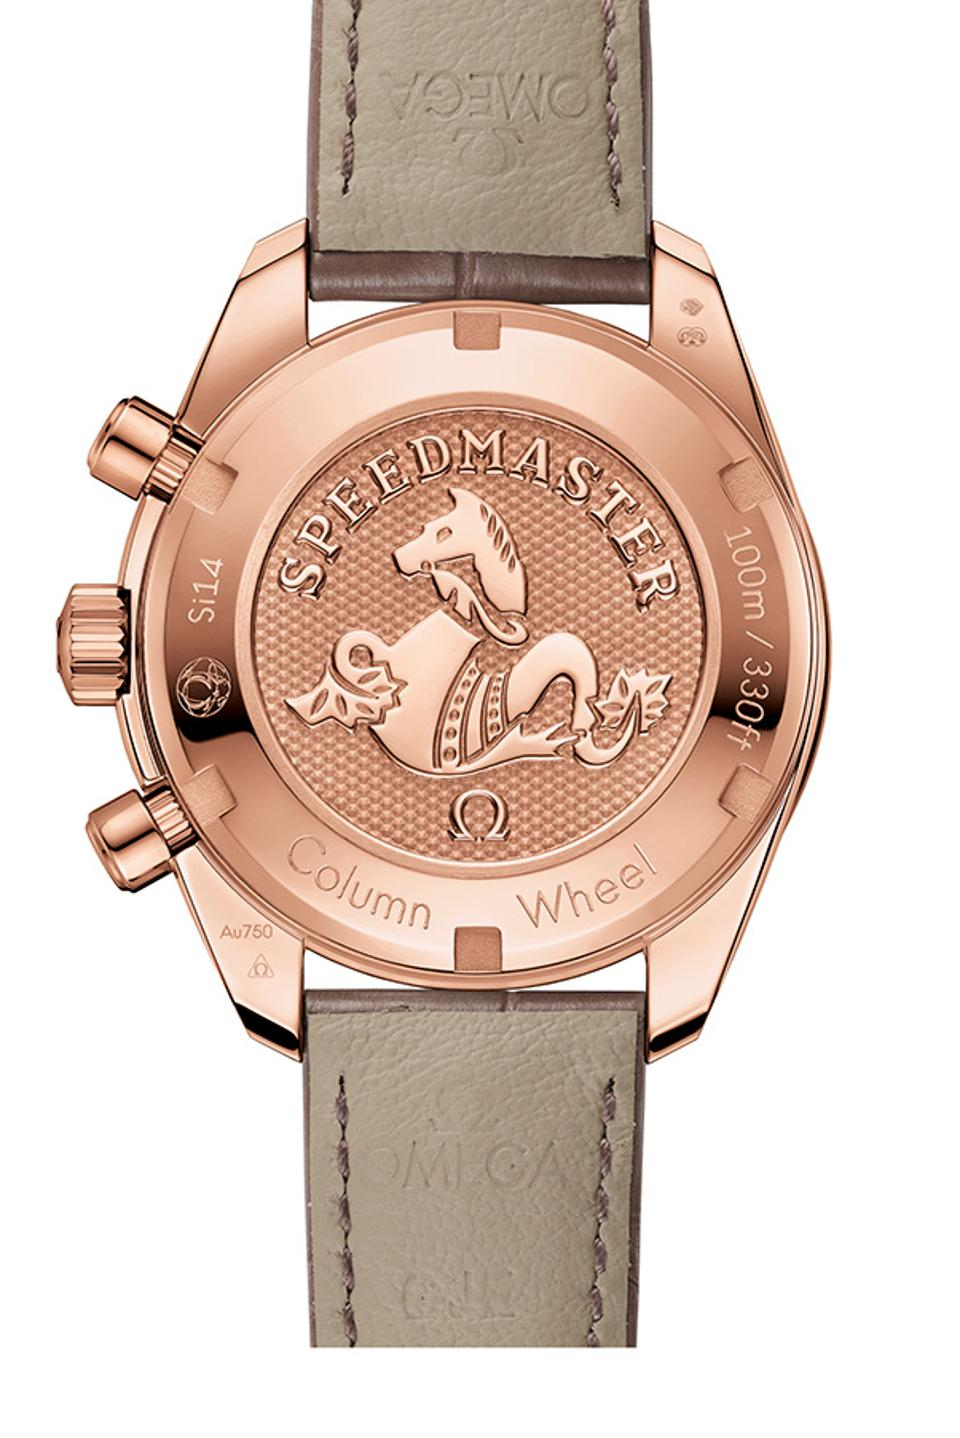 The caseback is engraved with the Speedmaster's iconic Seahorse insignia.